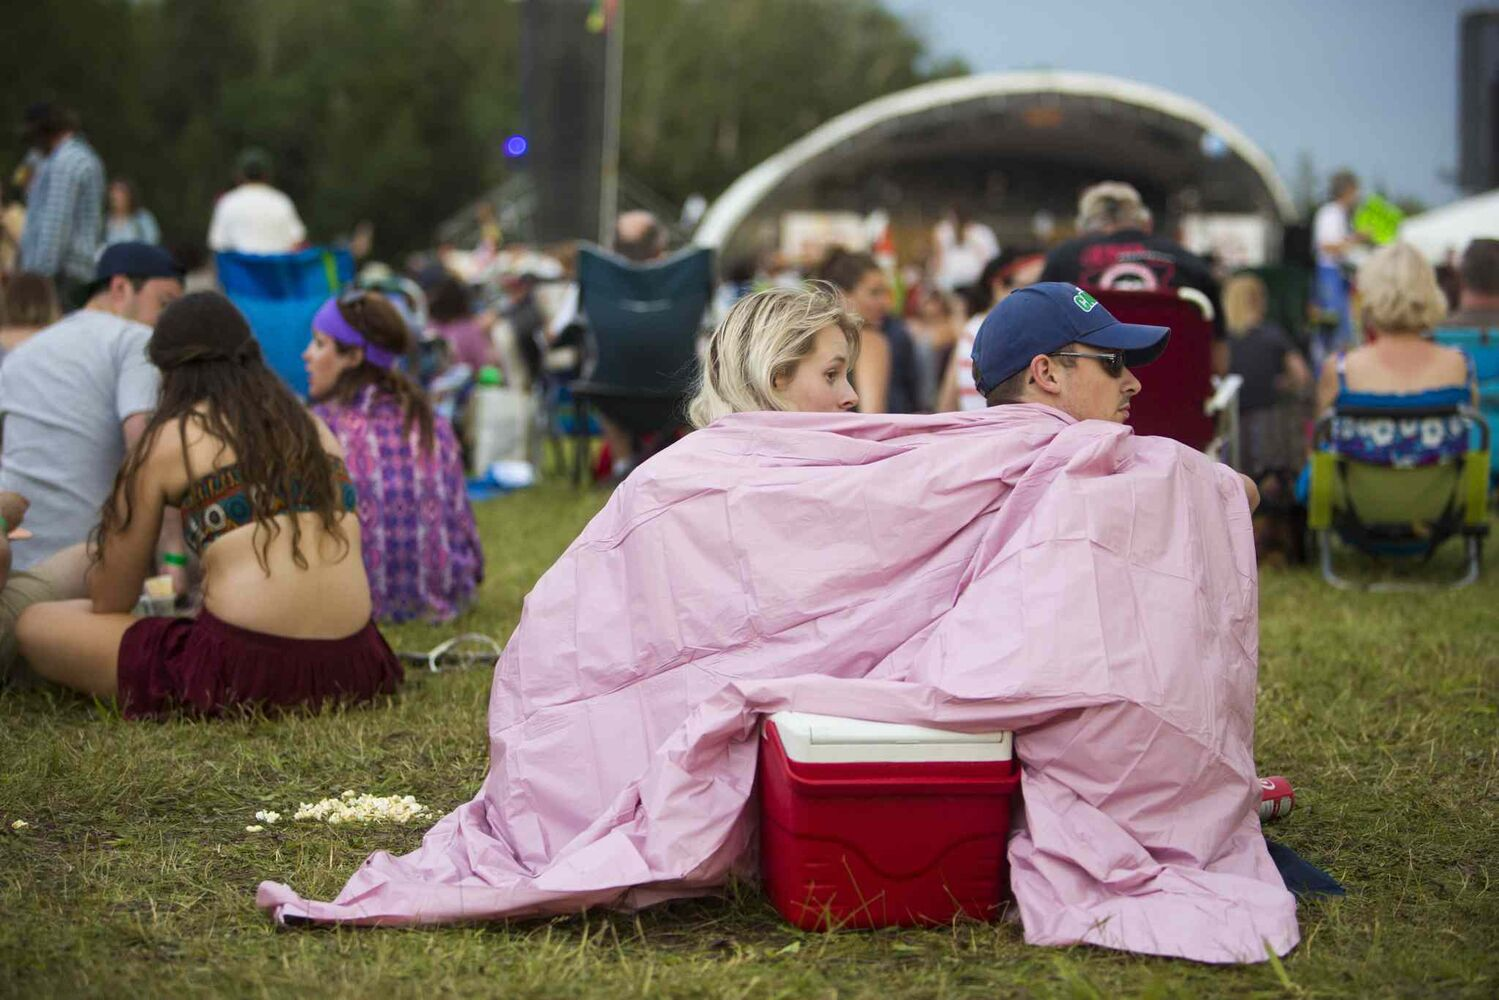 Elensia Herda and Jordan DeVisser cuddle under a poncho to keep dry at the Winnipeg Folk Festival at Birds Hill Provincial Park on Saturday, July 11, 2015.   Mikaela MacKenzie / Winnipeg Free Press (Winnipeg Free Press)